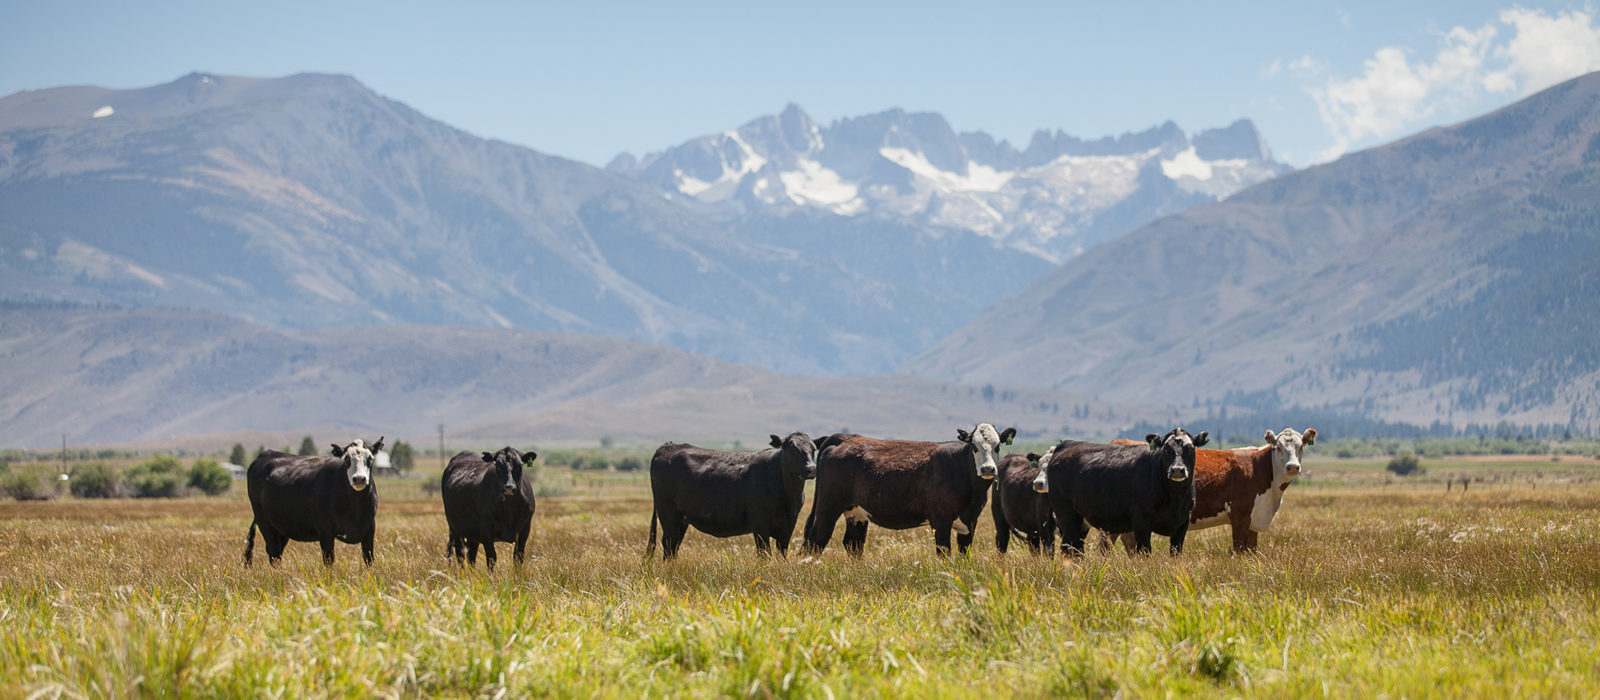 cattle in a field with mountains in the distance